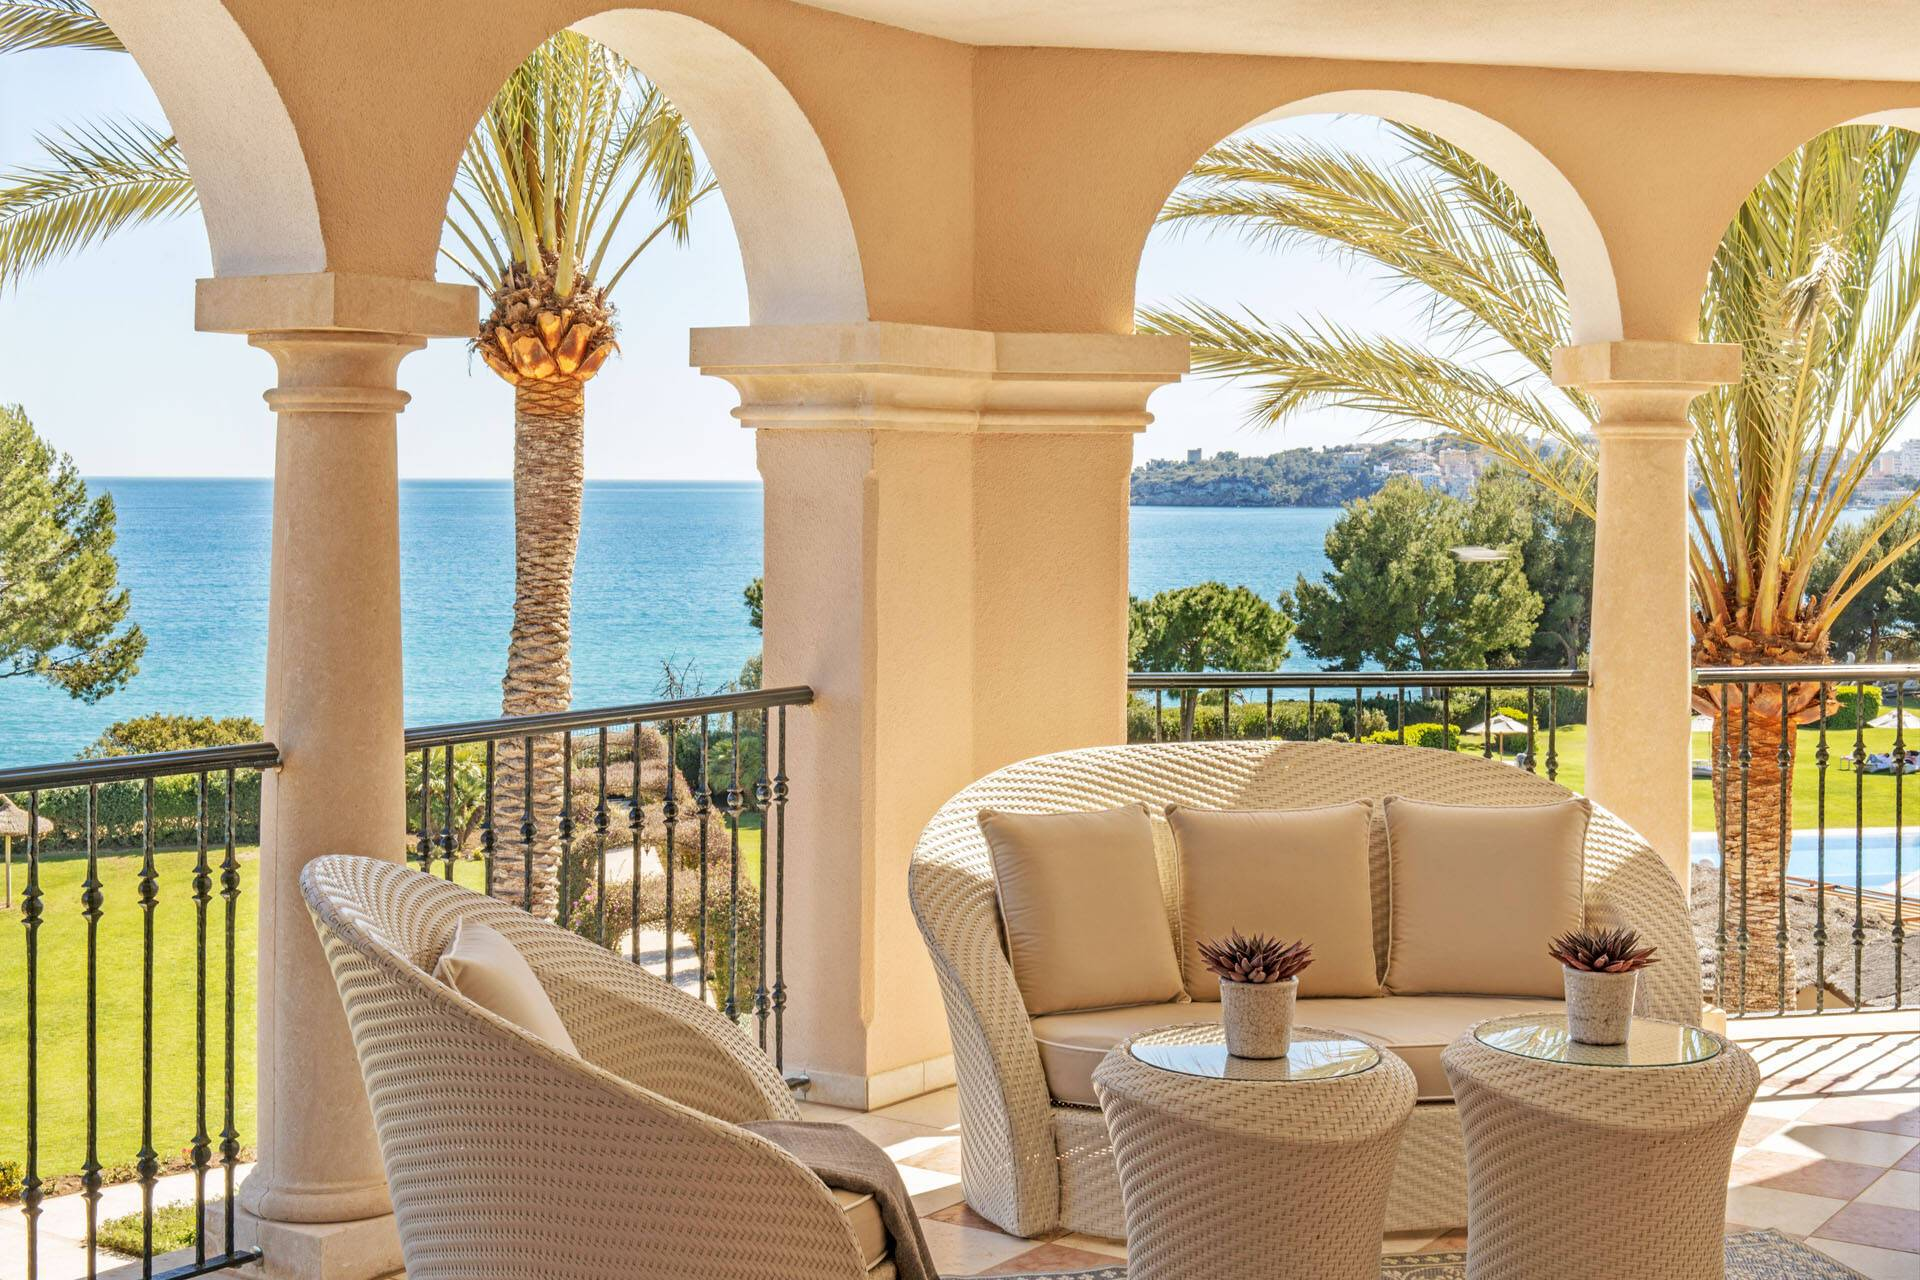 St Regis Mardavall Resort Majorque King Diamond Suite Terrace